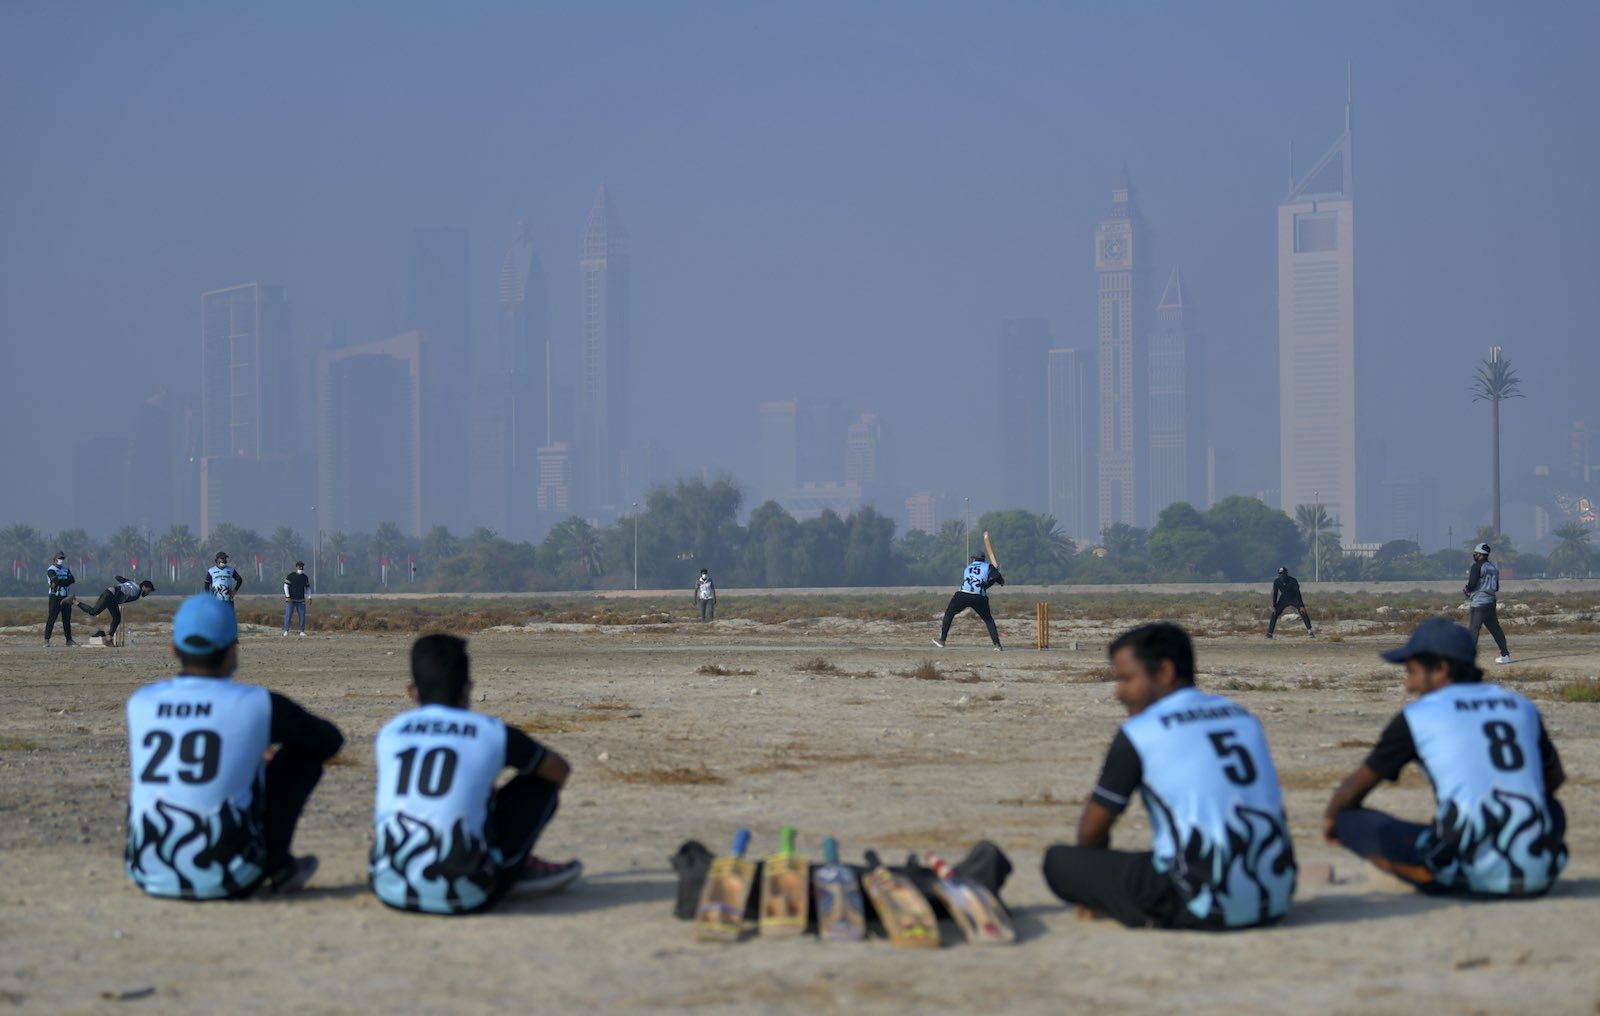 Workers in Dubai play cricket on their day off, 4 December 2020 (Karim SAHIB/AFP via Getty Images)